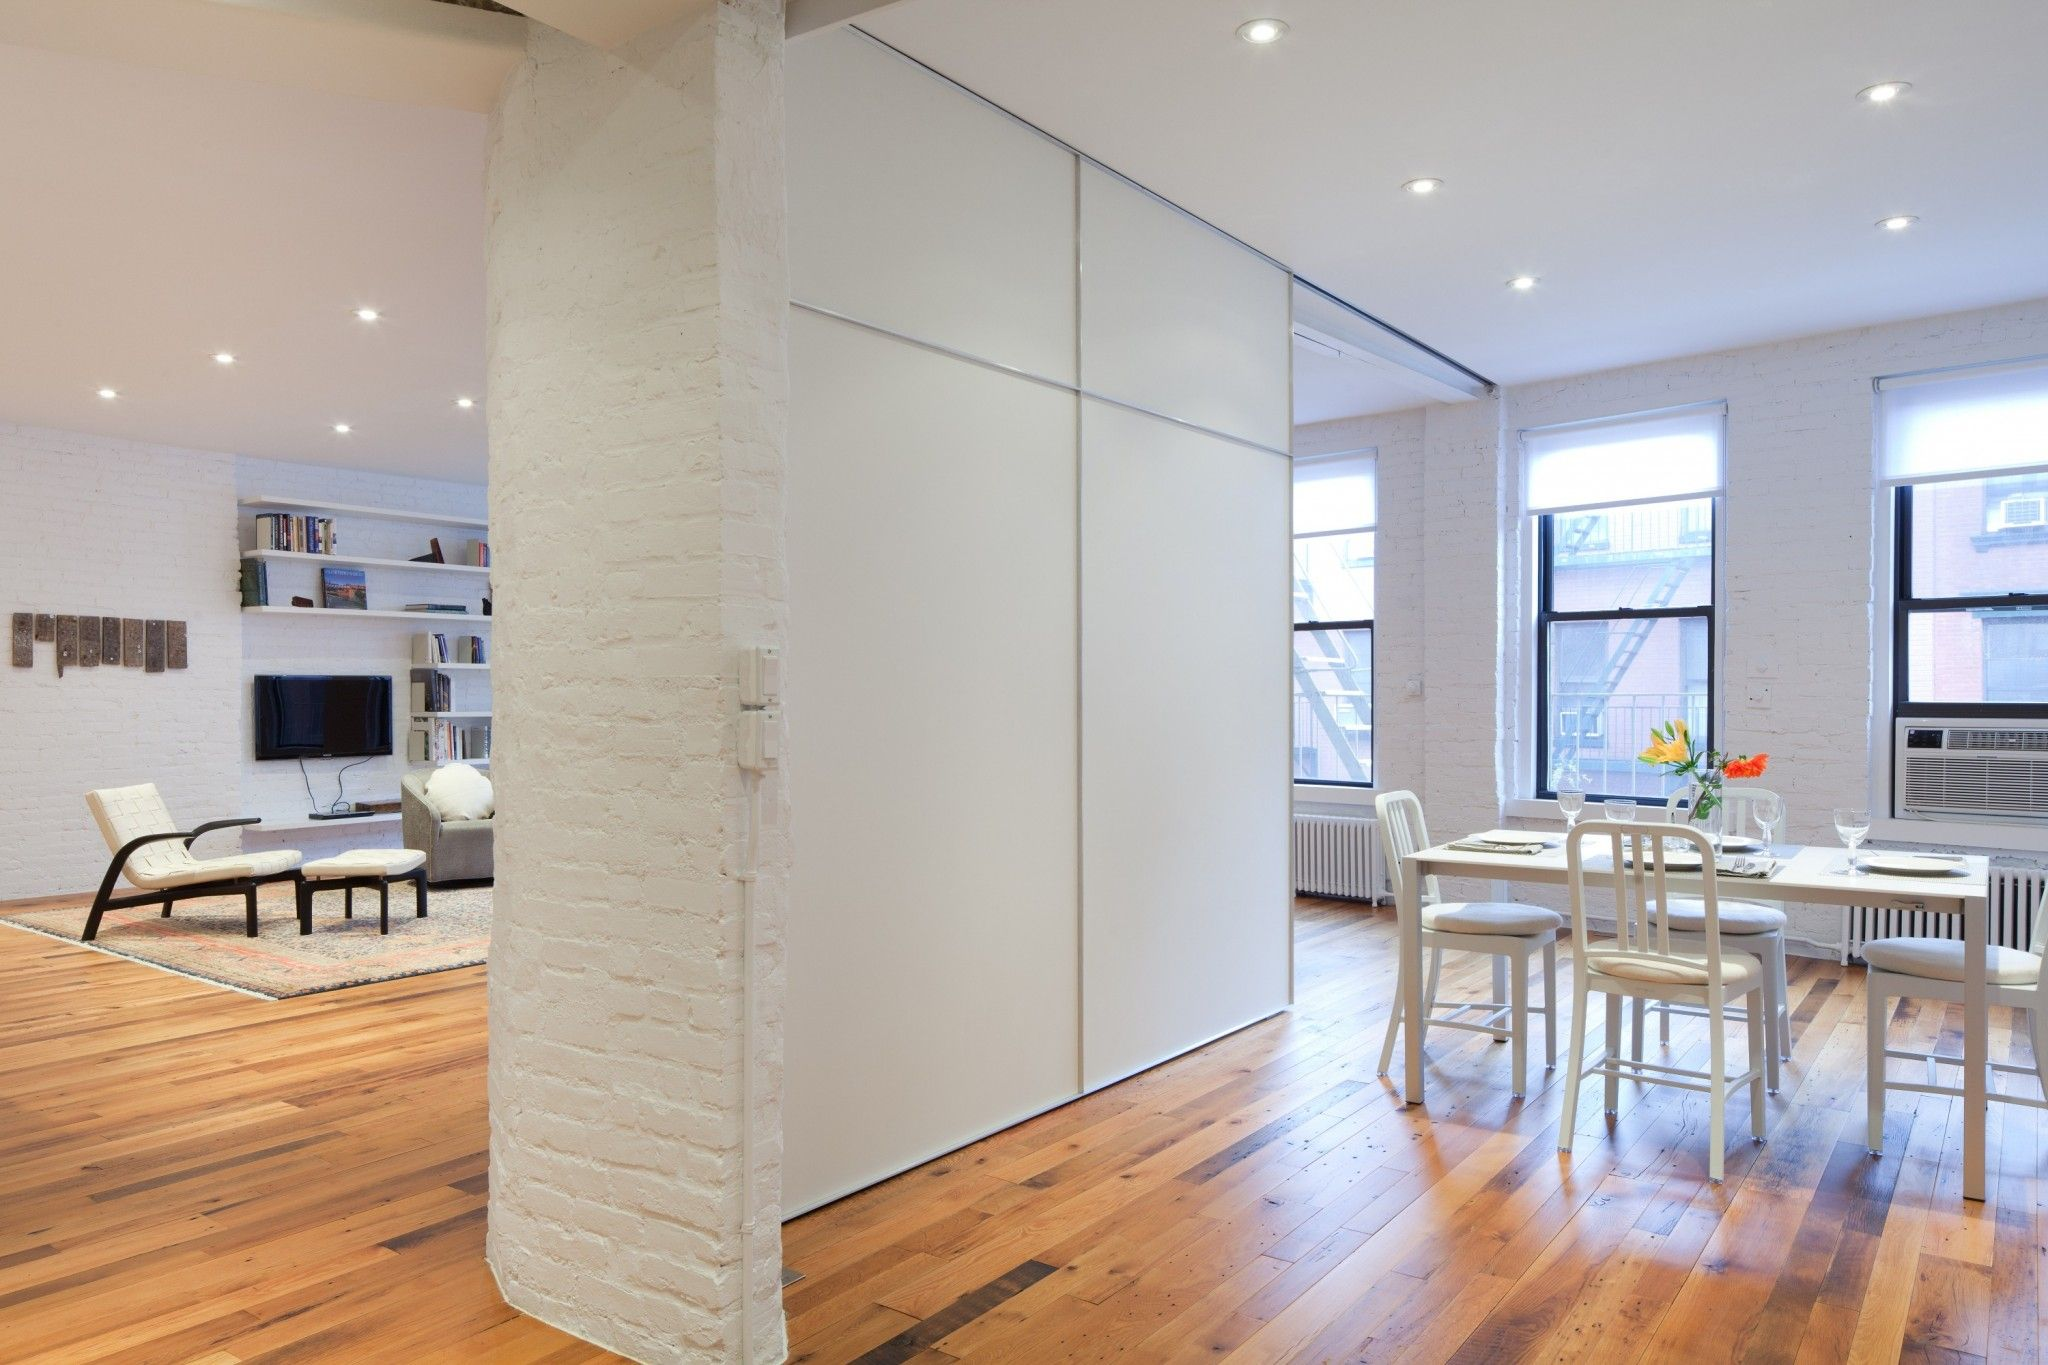 Interior Partitions Room Zoning Design Ideas White Brickwork And Plastic Dividers In The Living